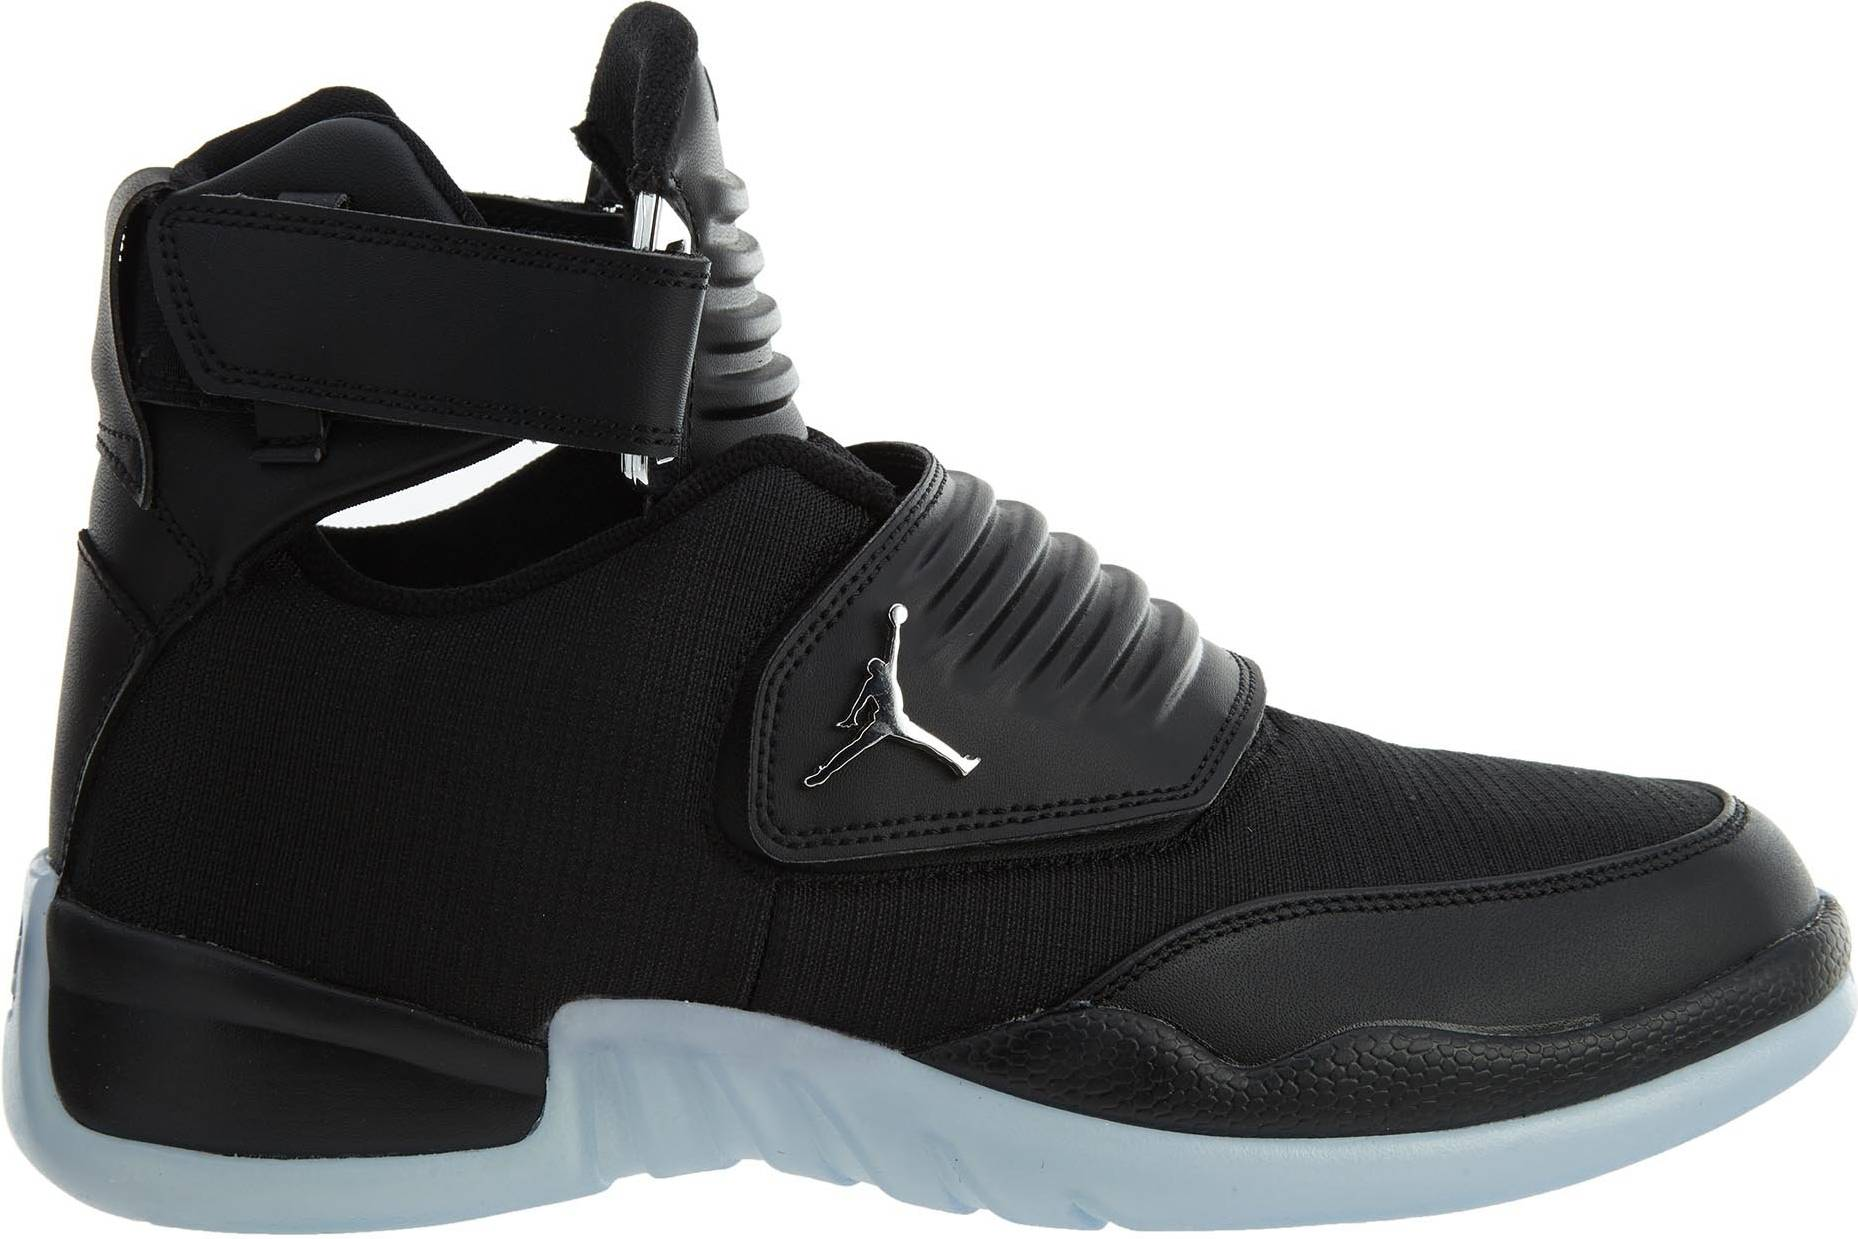 Only $120 + Review of Jordan Generation